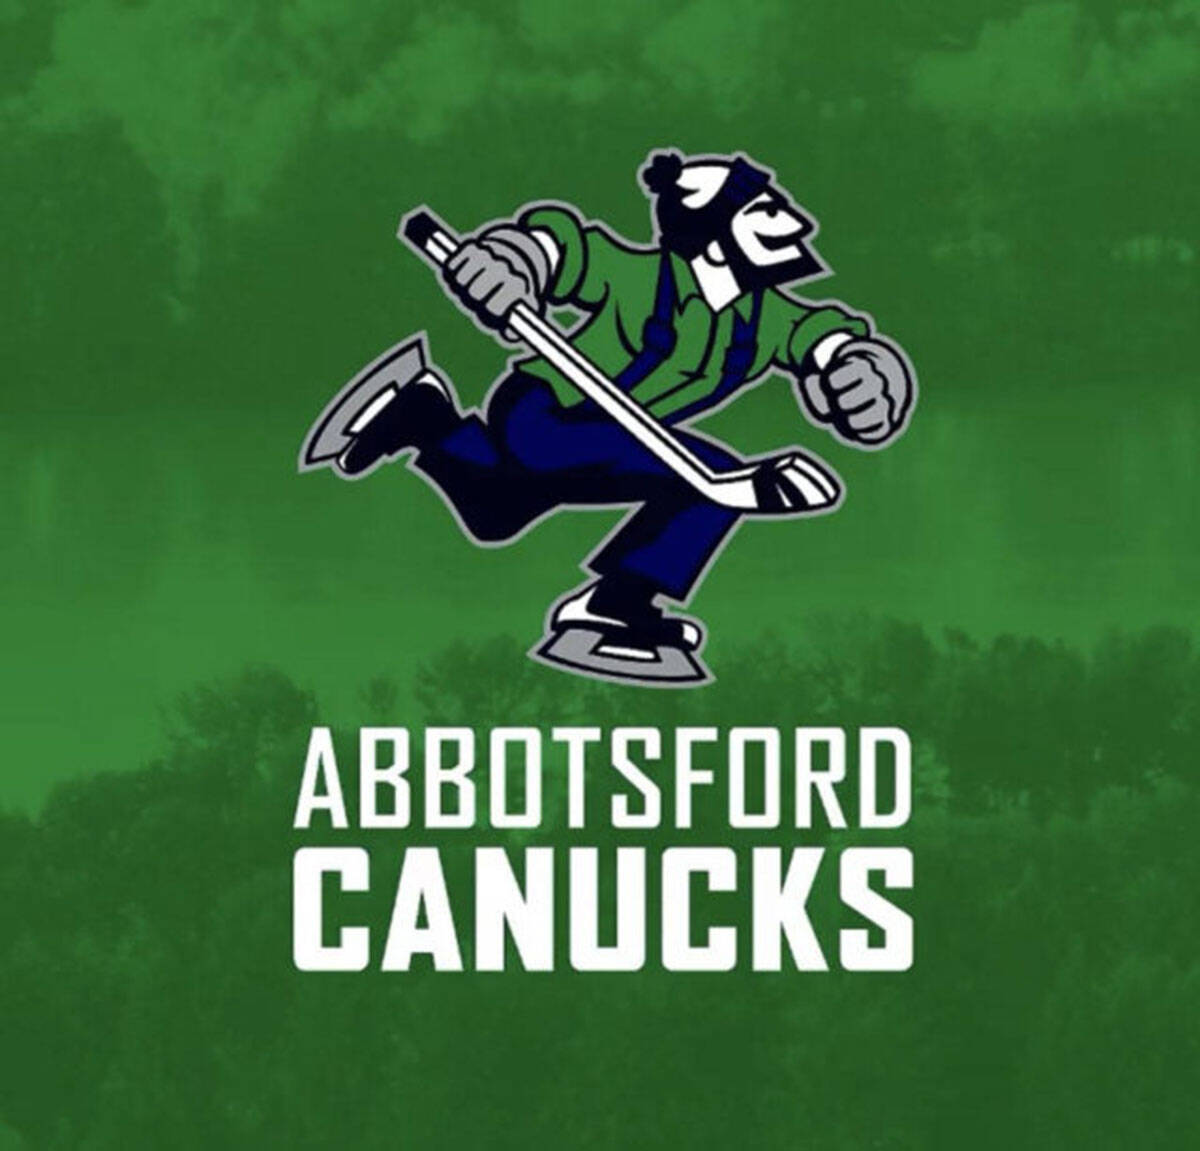 Single game tickets for the Abbotsford Canucks will be on sale for the general public starting on Oct. 1.